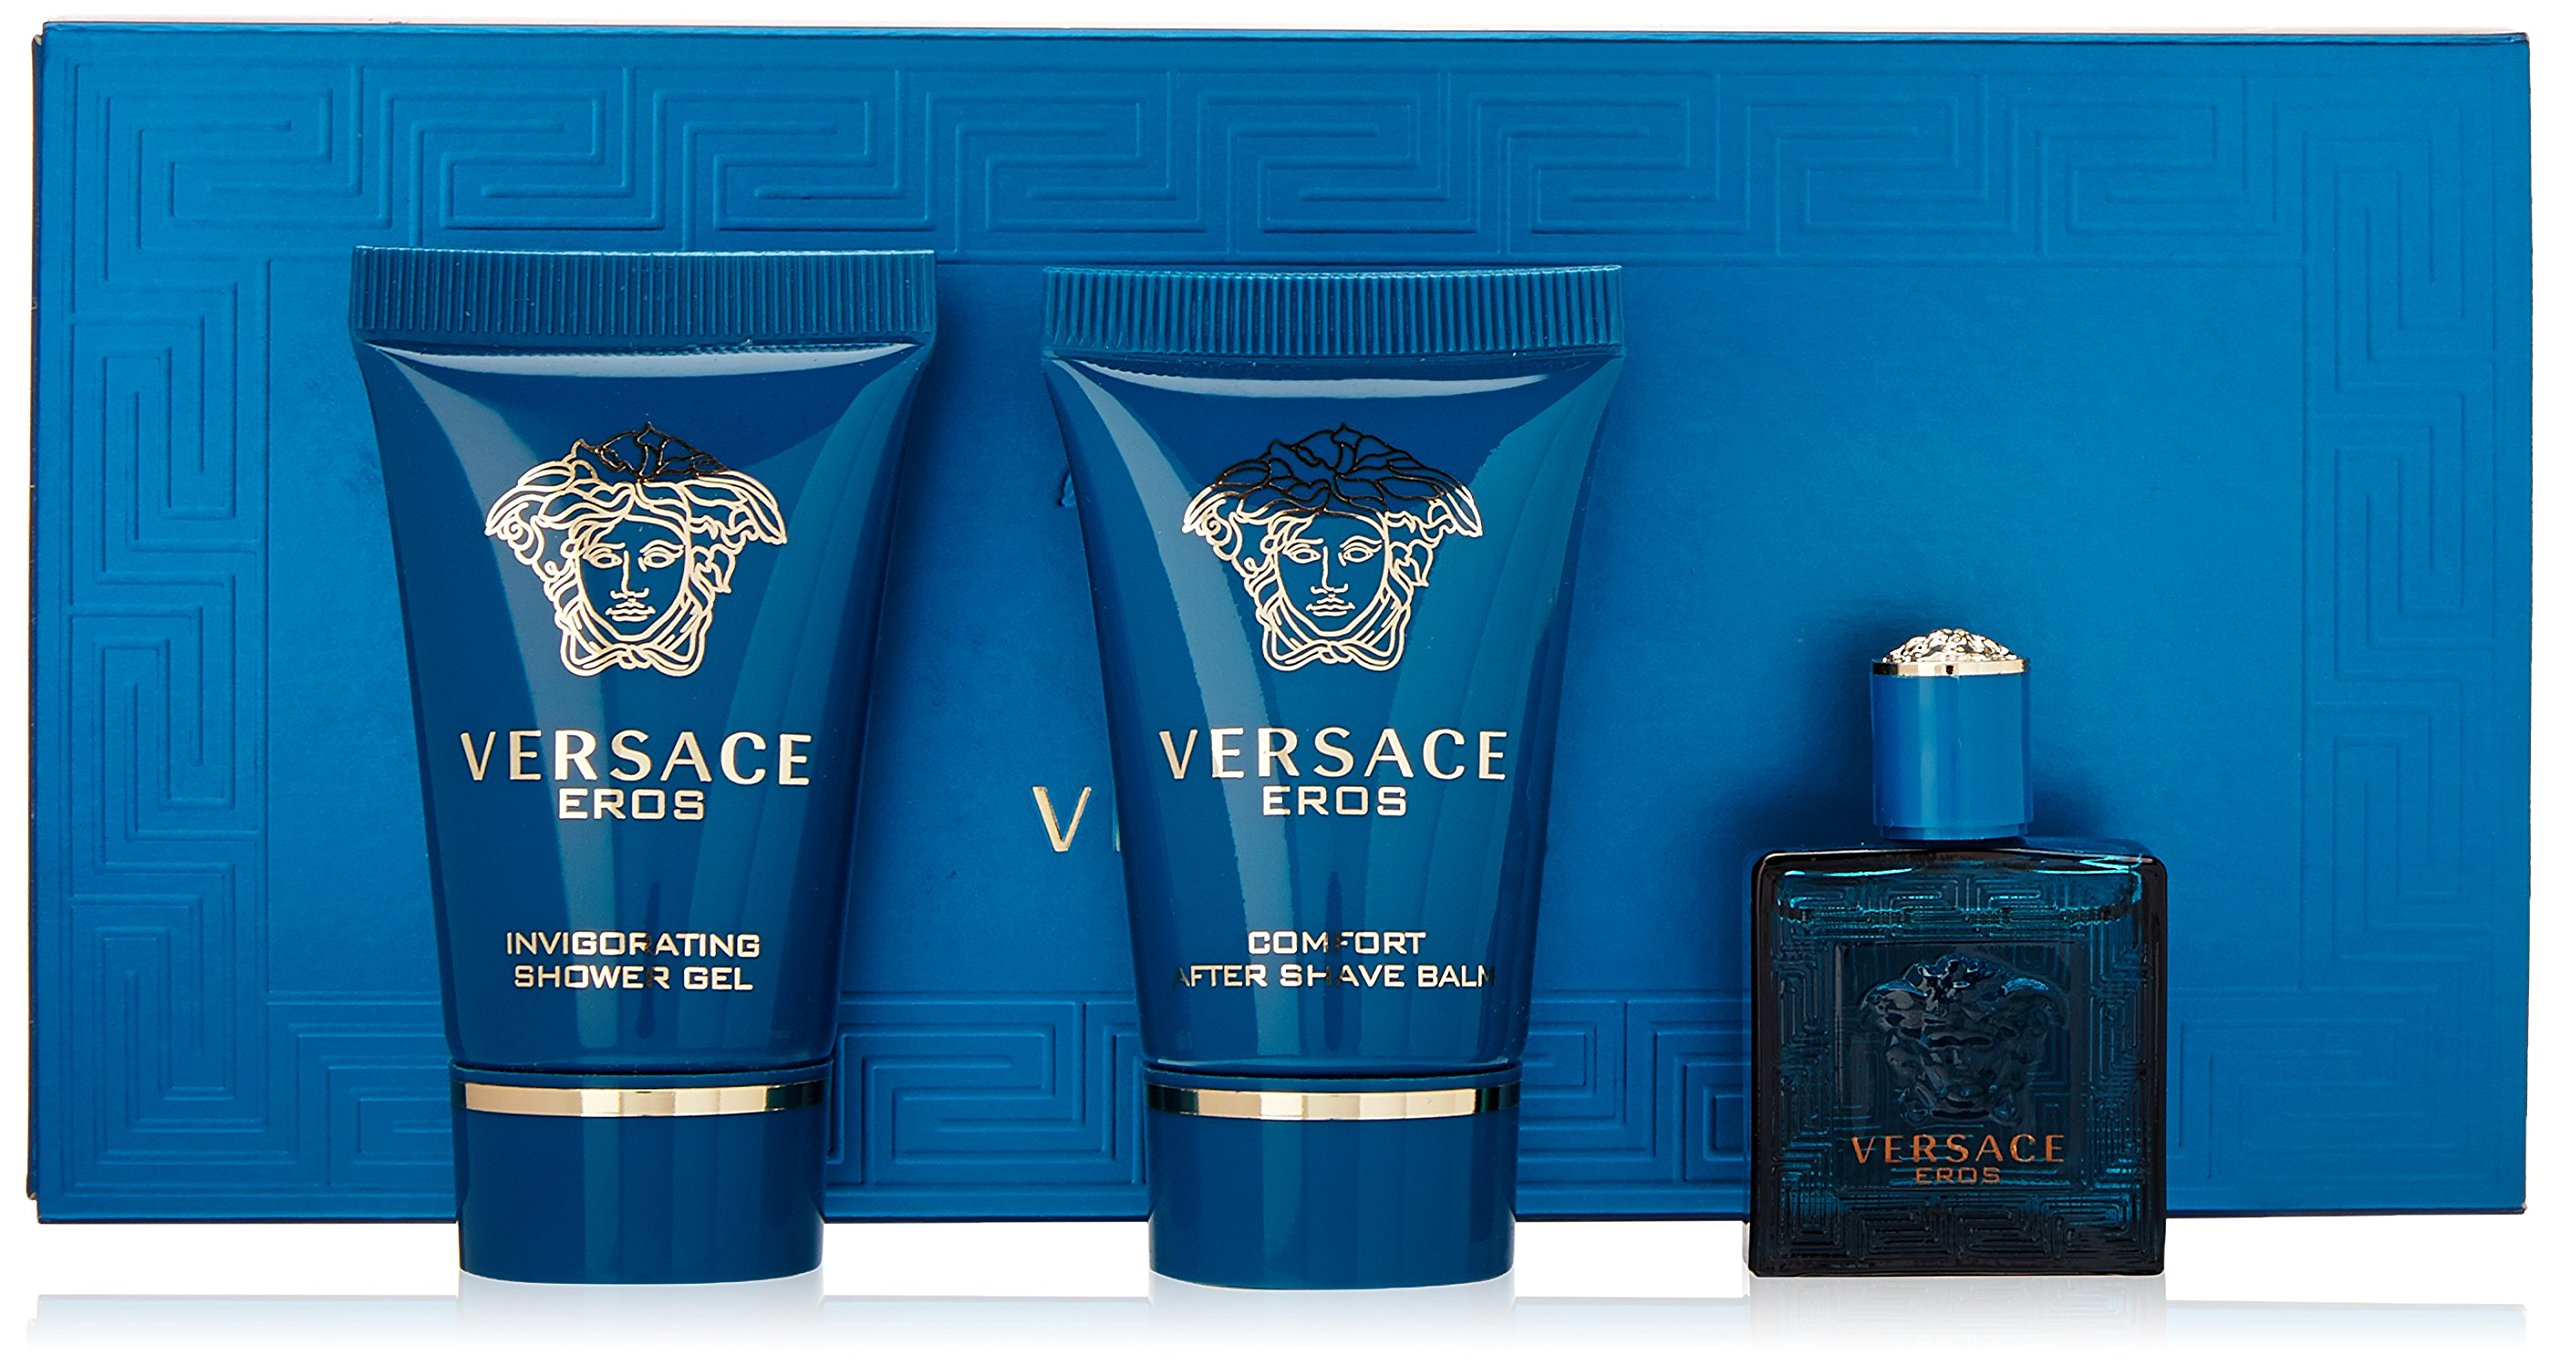 Amazon.com : Versace Eros Invigorating Shower Gel, 3.4 oz : Bath And ...